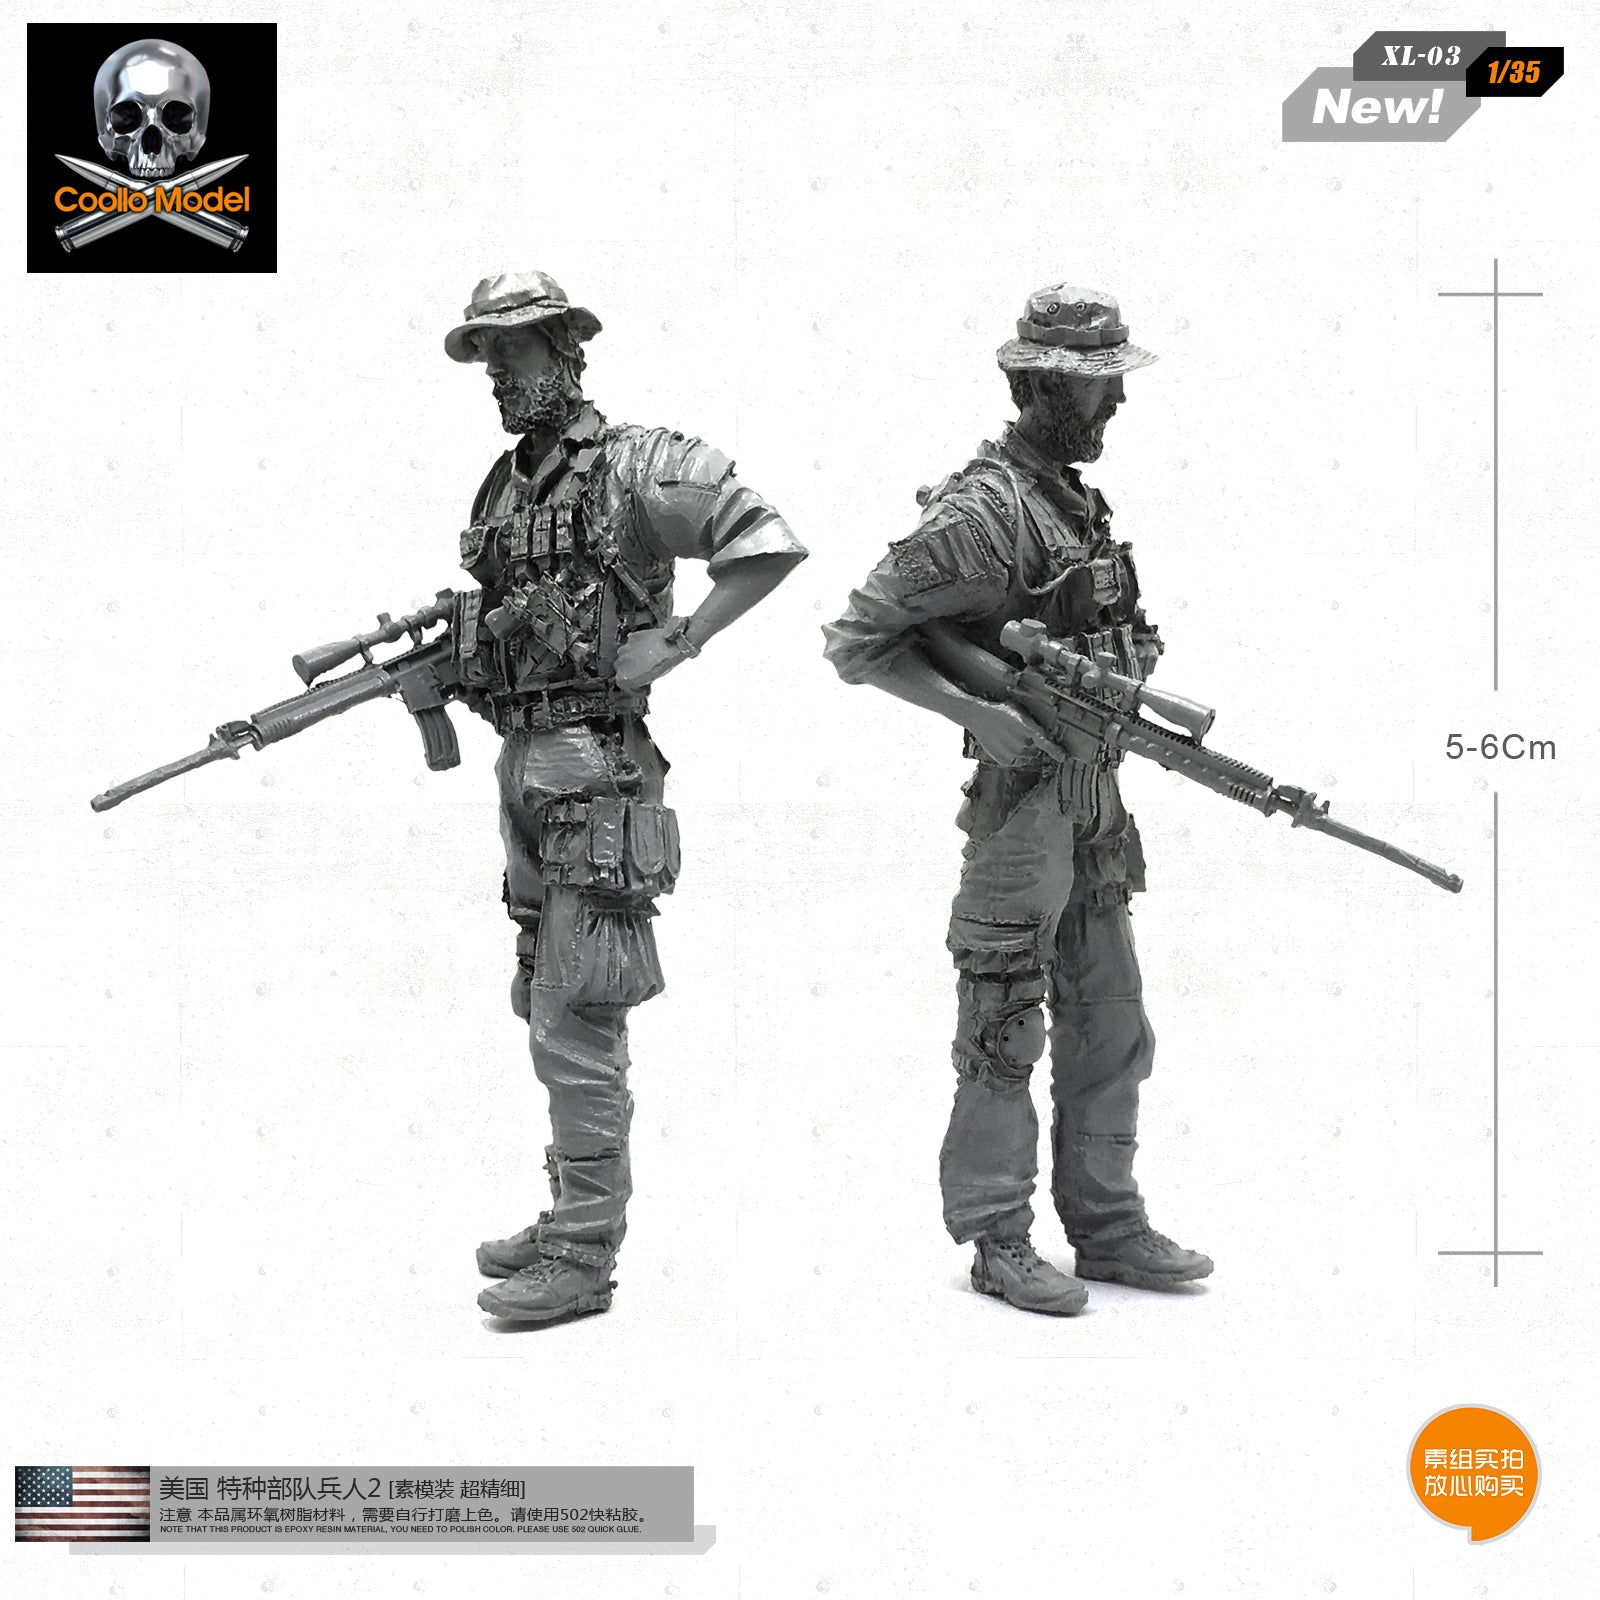 1/3 soldiers US special forces 2 resin soldiers model XL-03 [plain mold super fine]